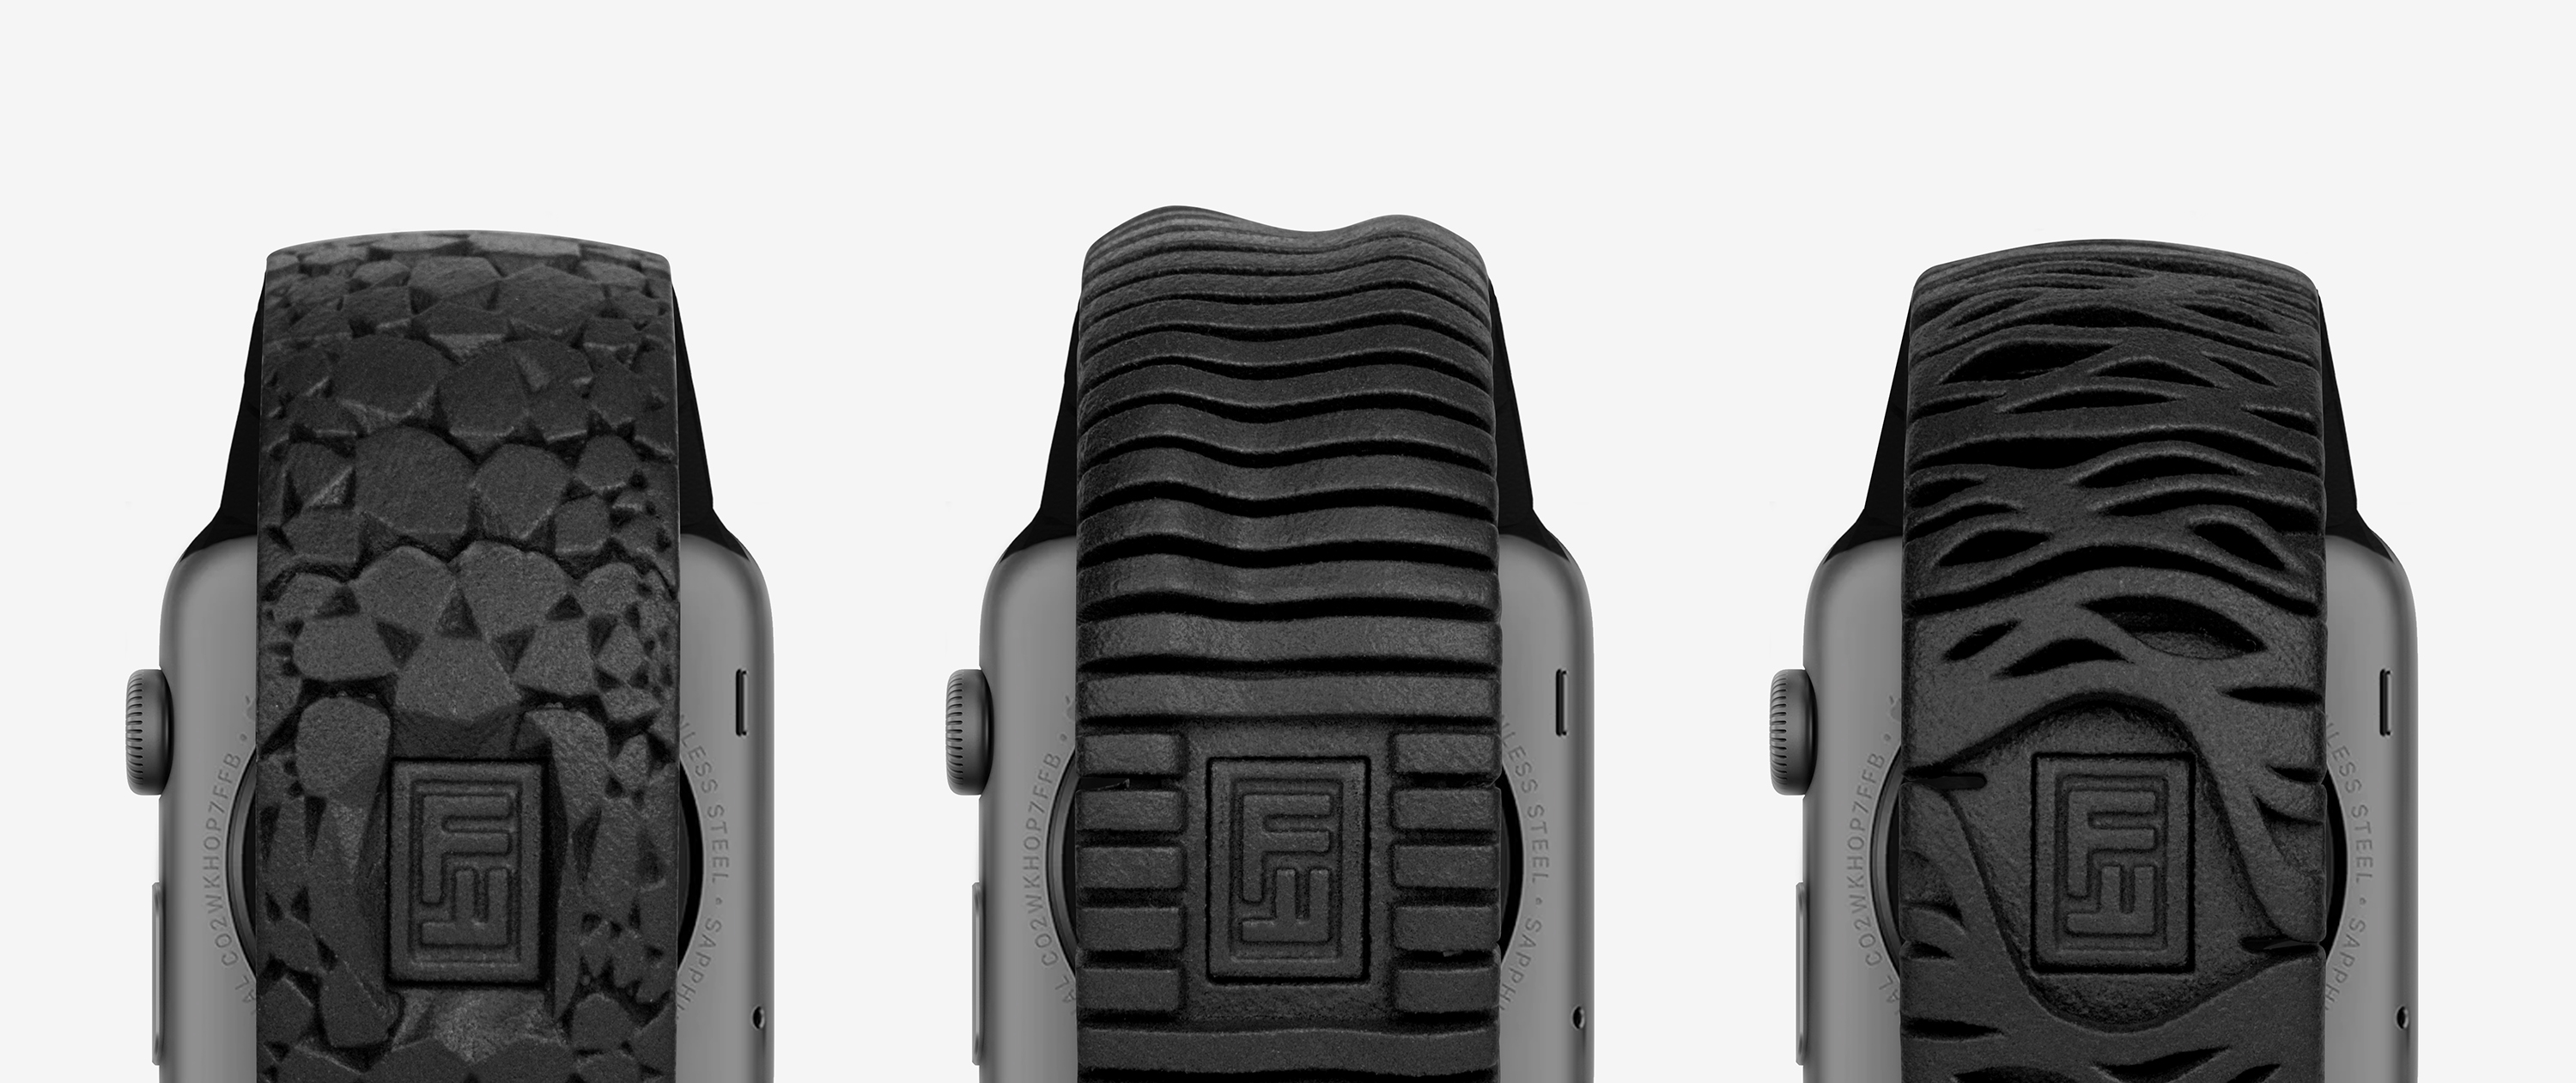 Freshfiber 3D Printed Apple Watch Bands, Design by Matthijs Kok for Freshfiber